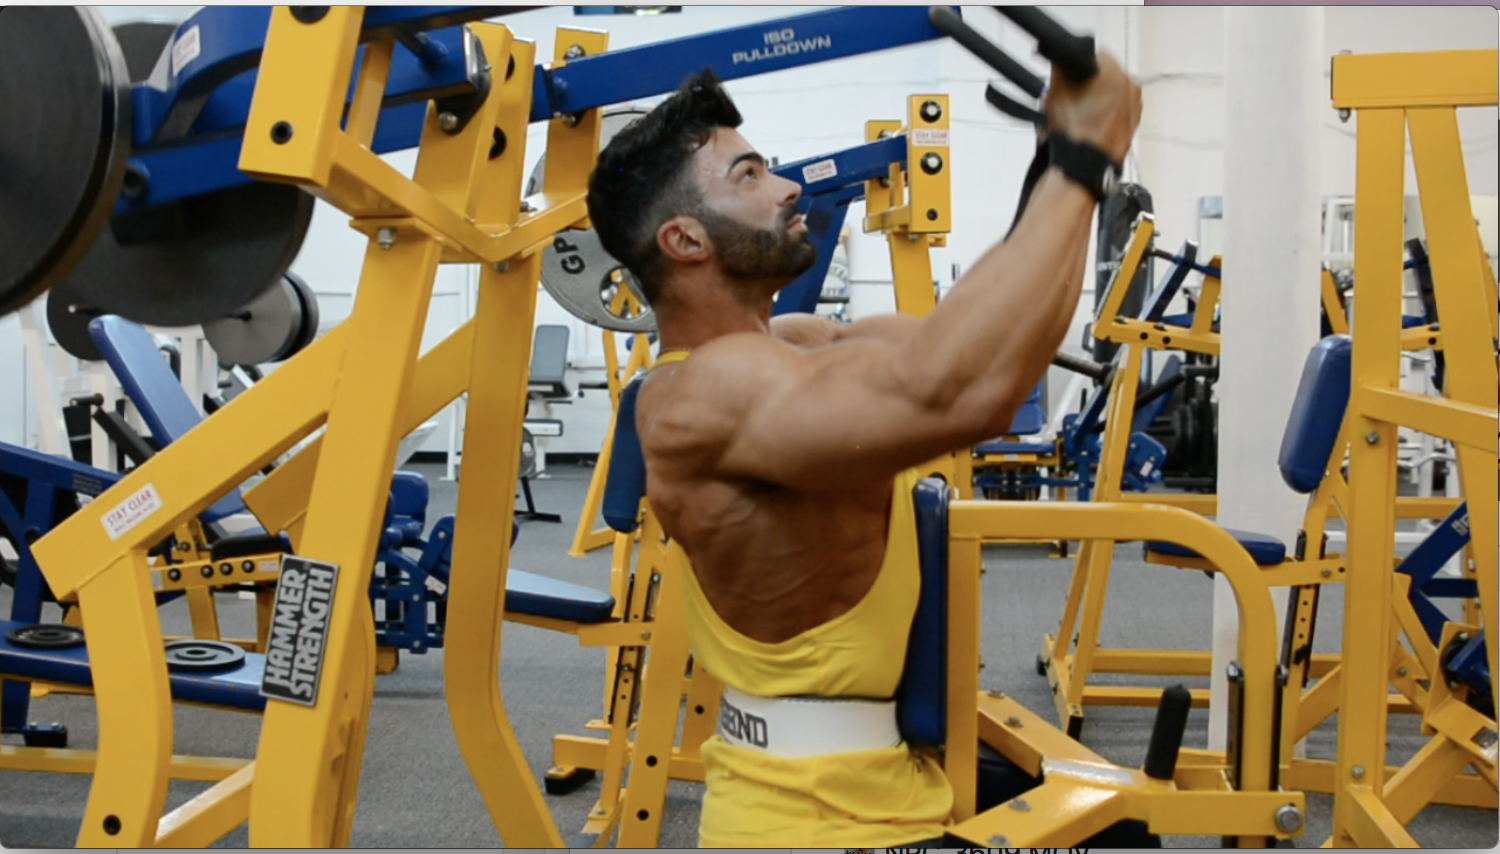 IFBB Men's Physique Pro  Sergi Constance Back/Traps Workout At The NPC Photo Gym.